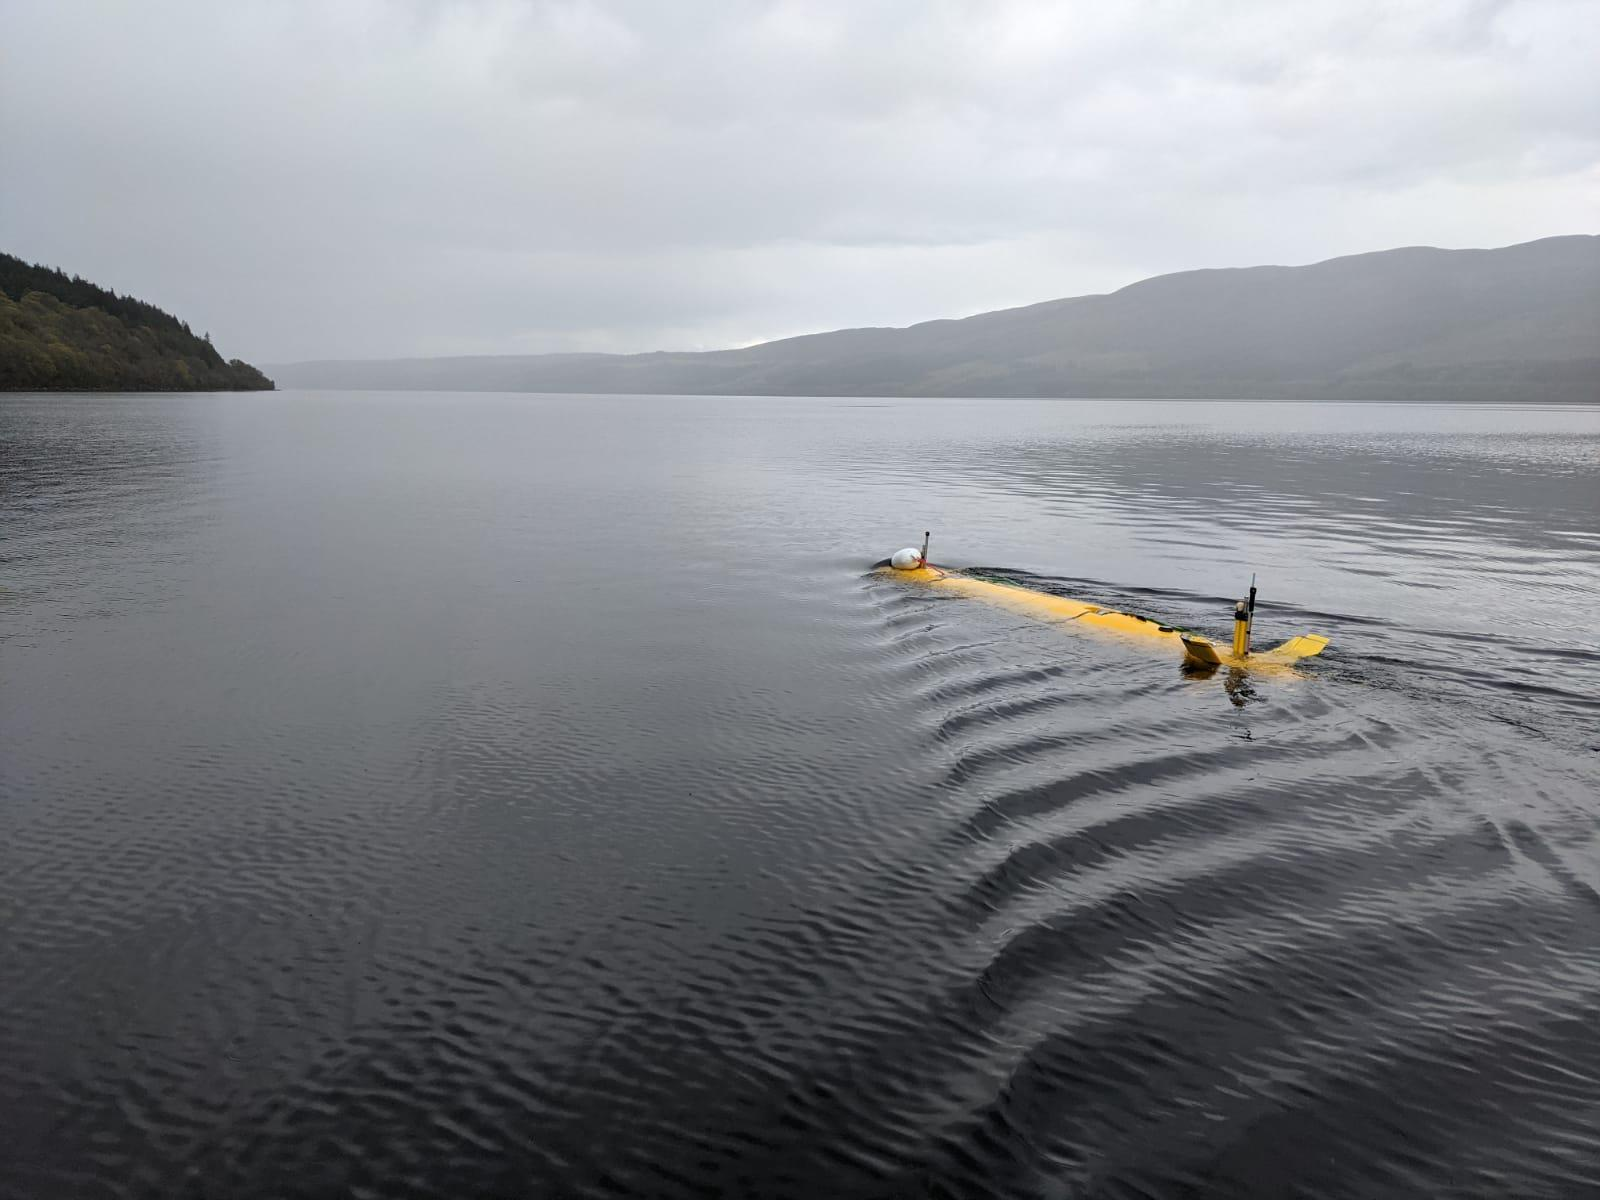 A2KUI heading out into Loch Ness in the early morning